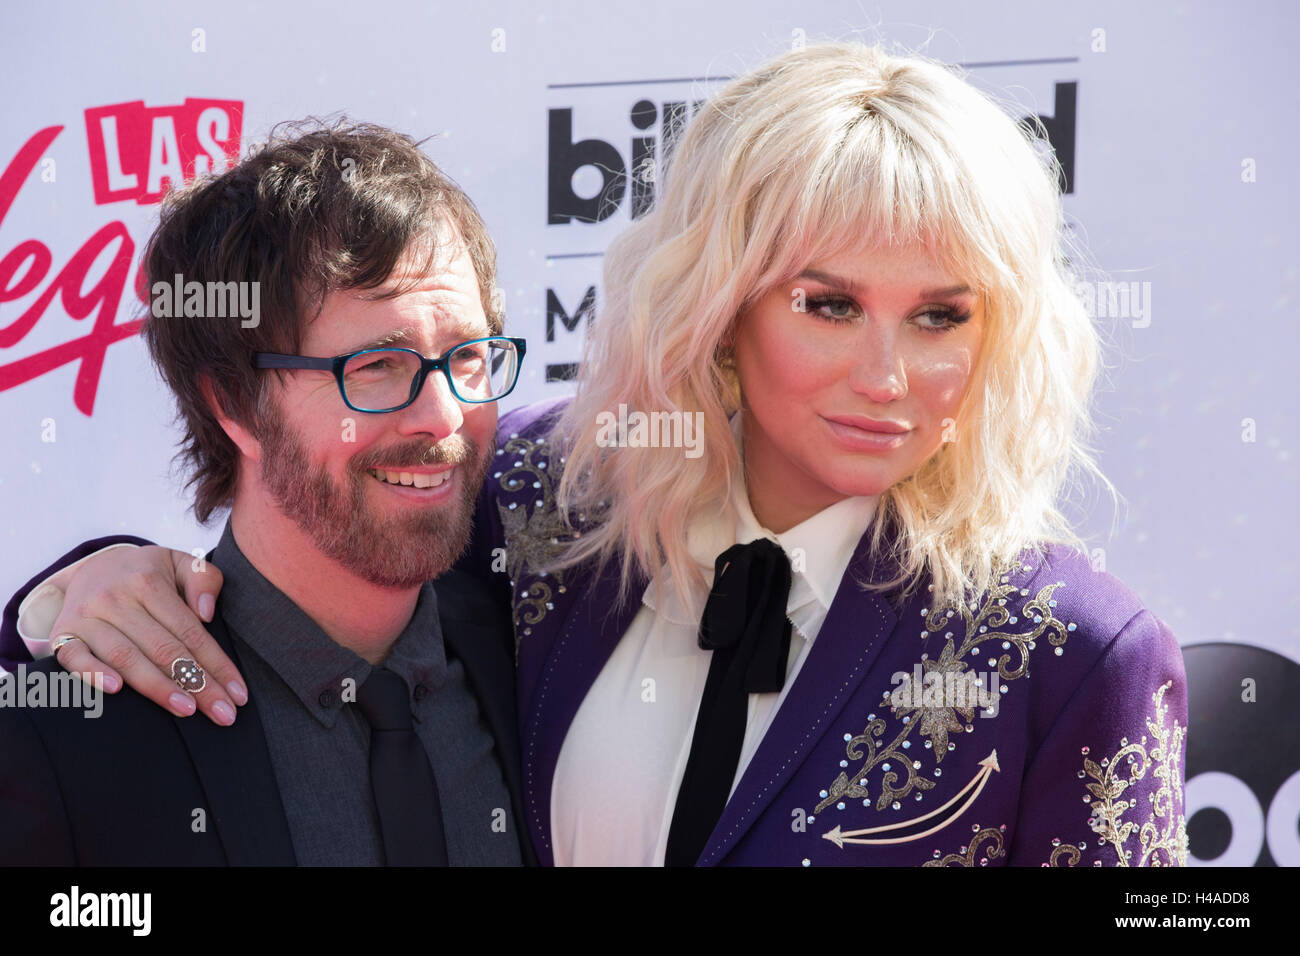 Ben Folds and Kesha attend 2016 Billboard Music Awards at T-Mobile Arena on May 22, 2016 in Las Vegas, Nevada, USA - Stock Image